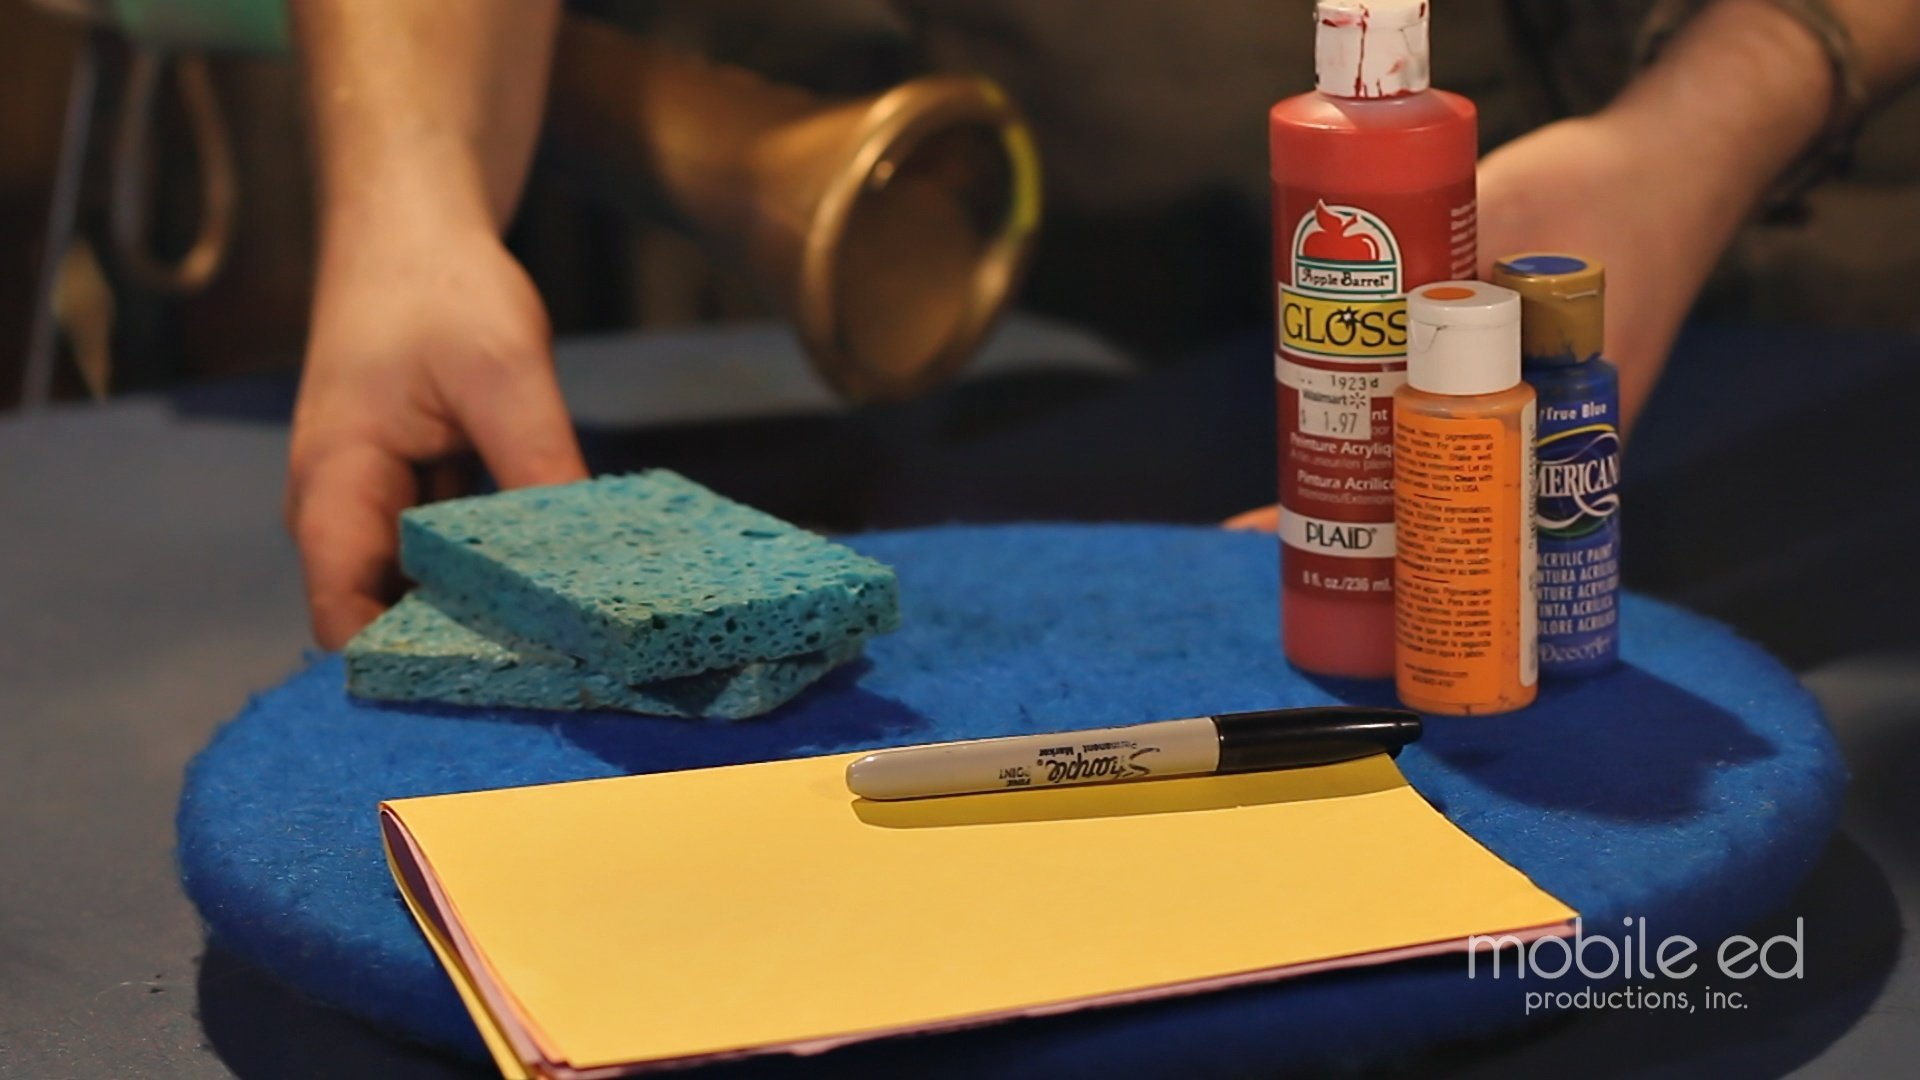 Gather Your Art Supplies | Handy Dan the Junkyard Man | Mobile Ed Productions